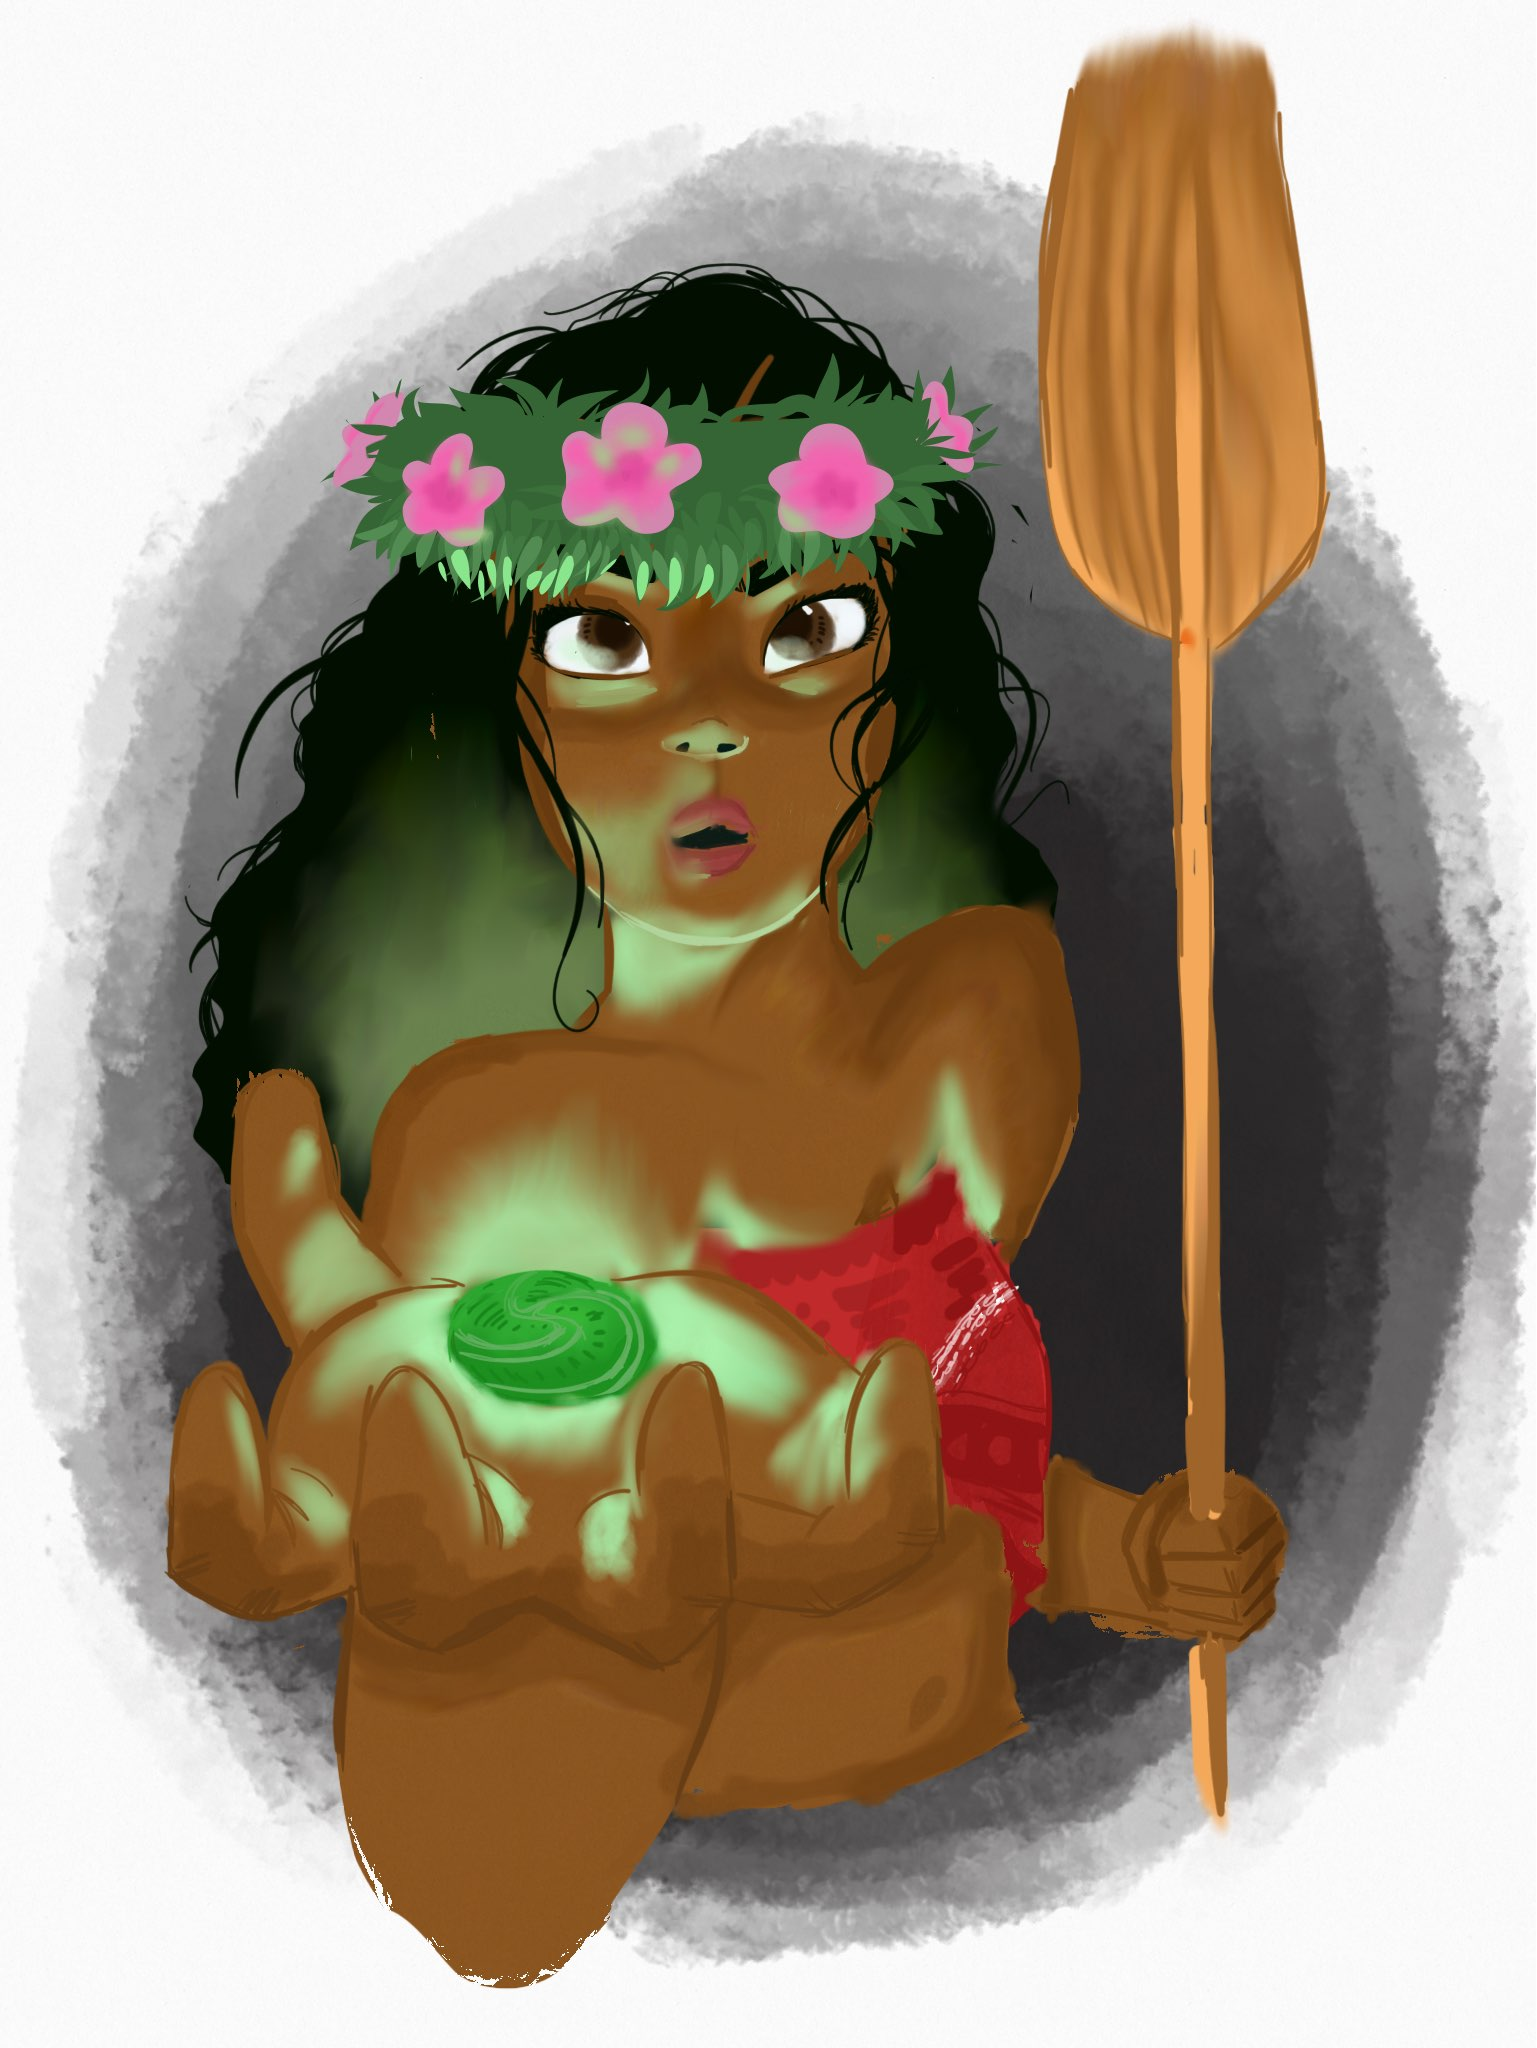 moana made with Sketches